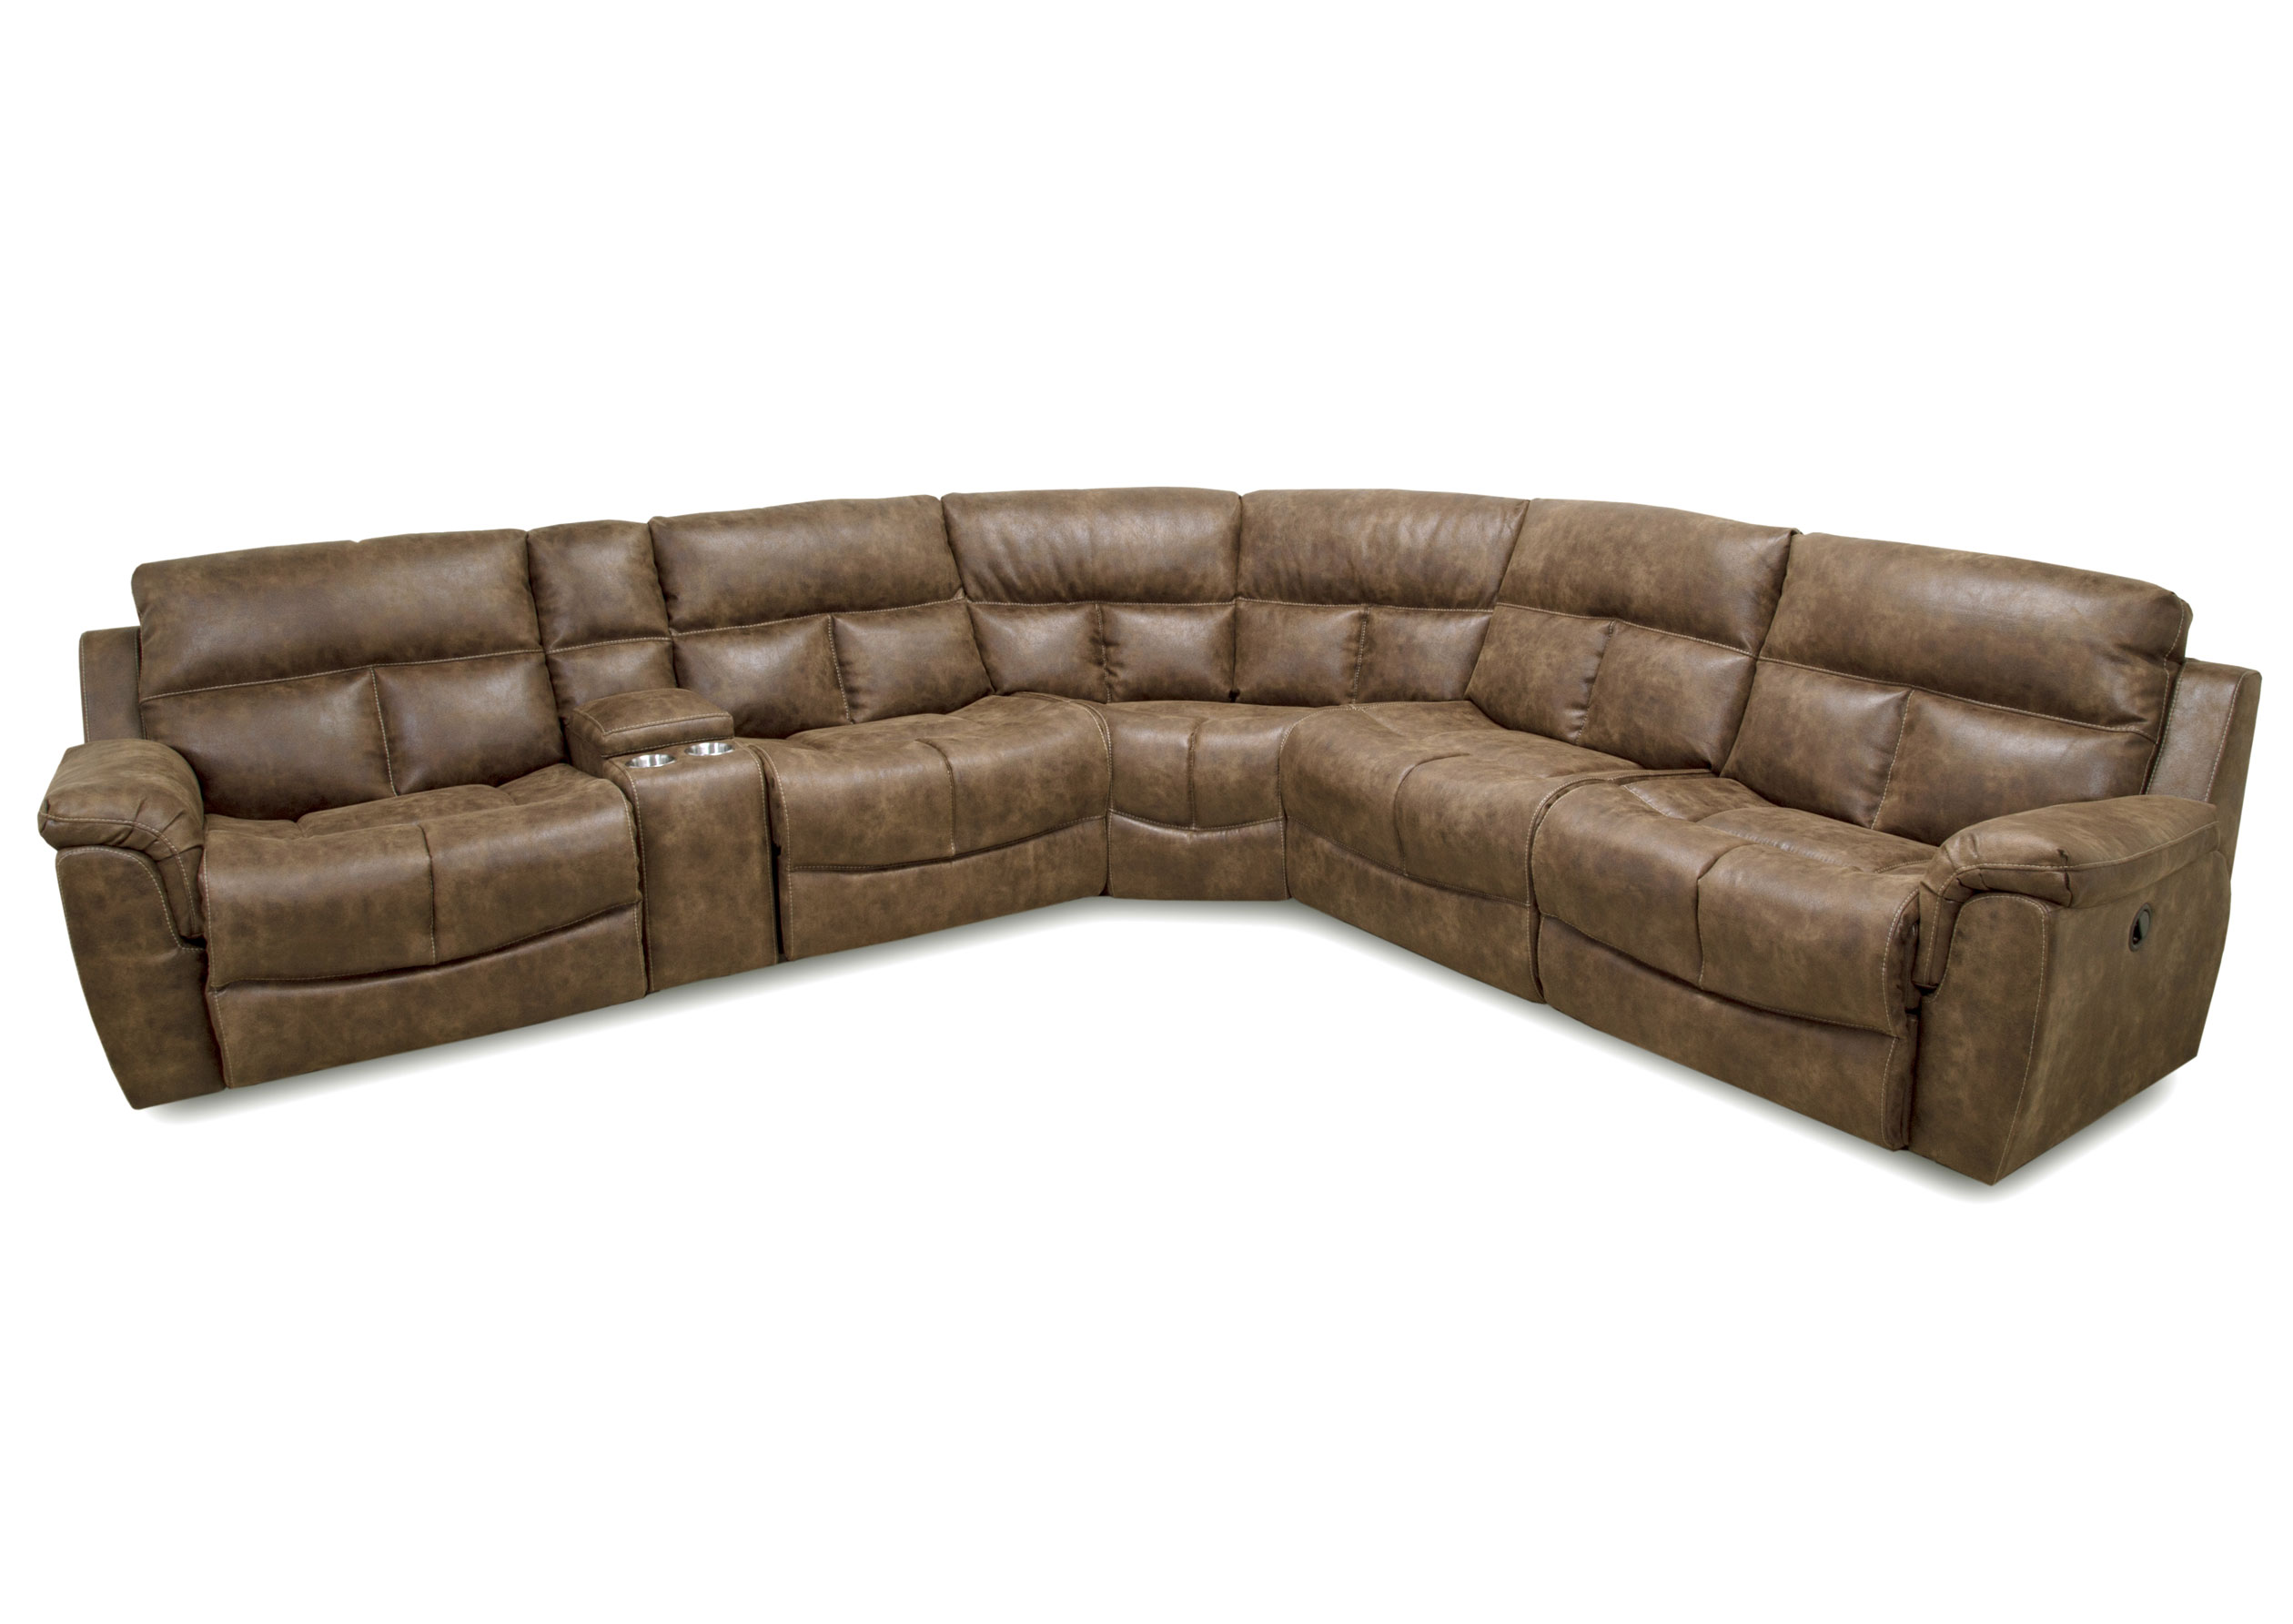 Awesome Stallion 466 Reclining Sectional Extra Wide Sofas And Caraccident5 Cool Chair Designs And Ideas Caraccident5Info